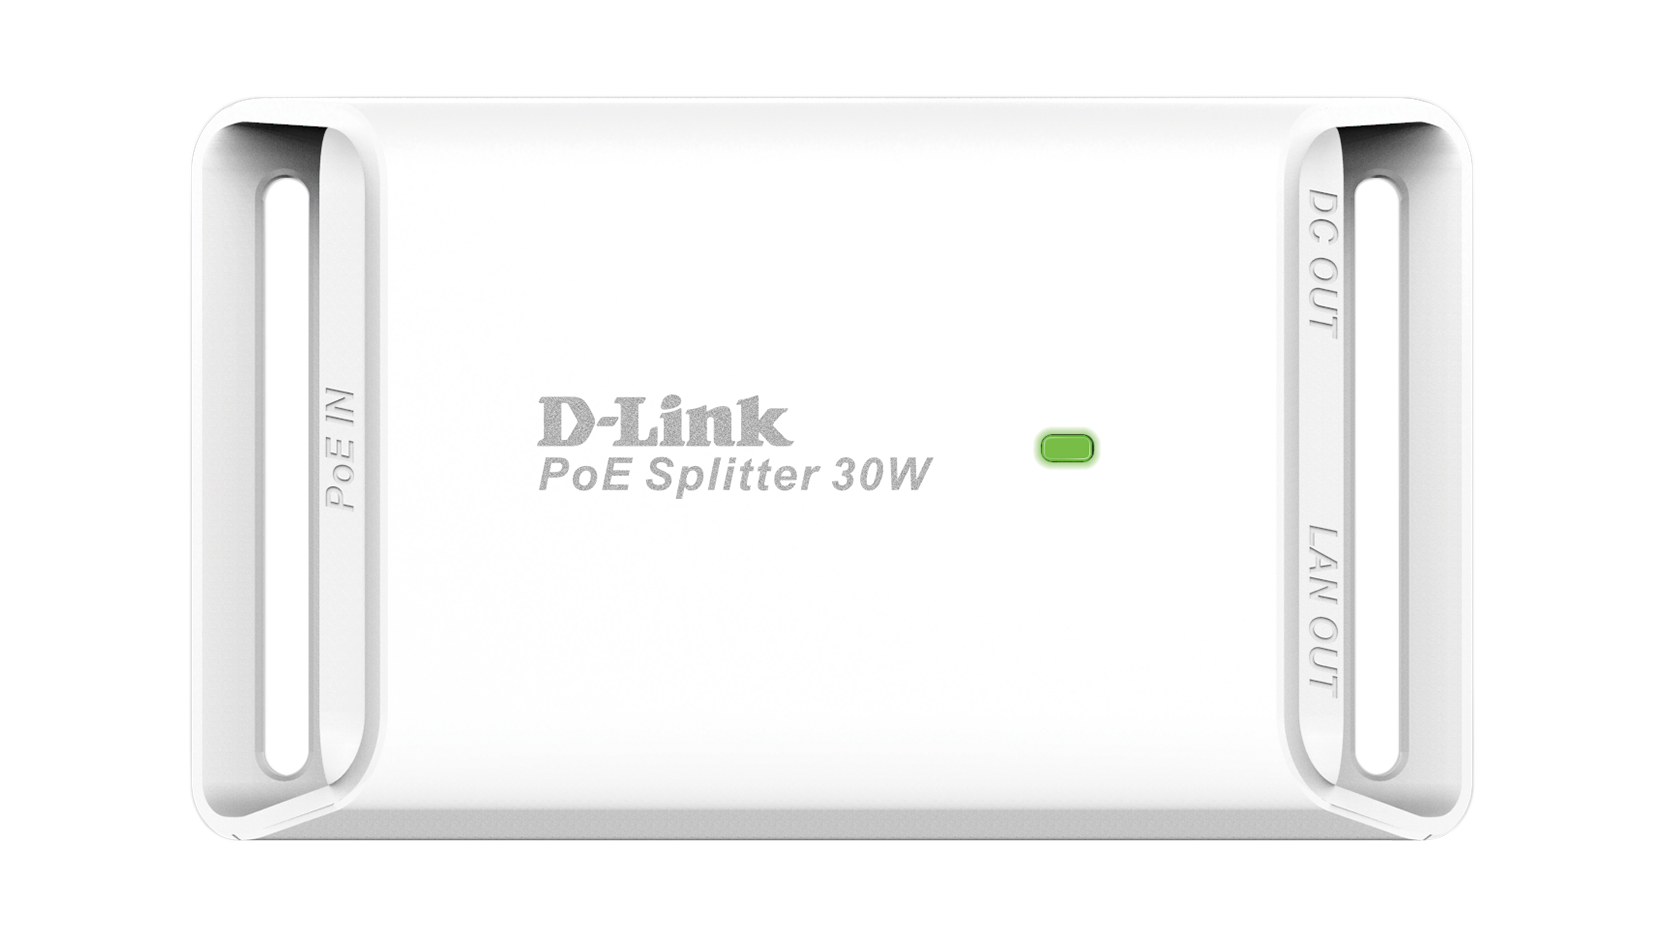 D-Link DPE-301GS 1-Port Gigabit PoE Splitter